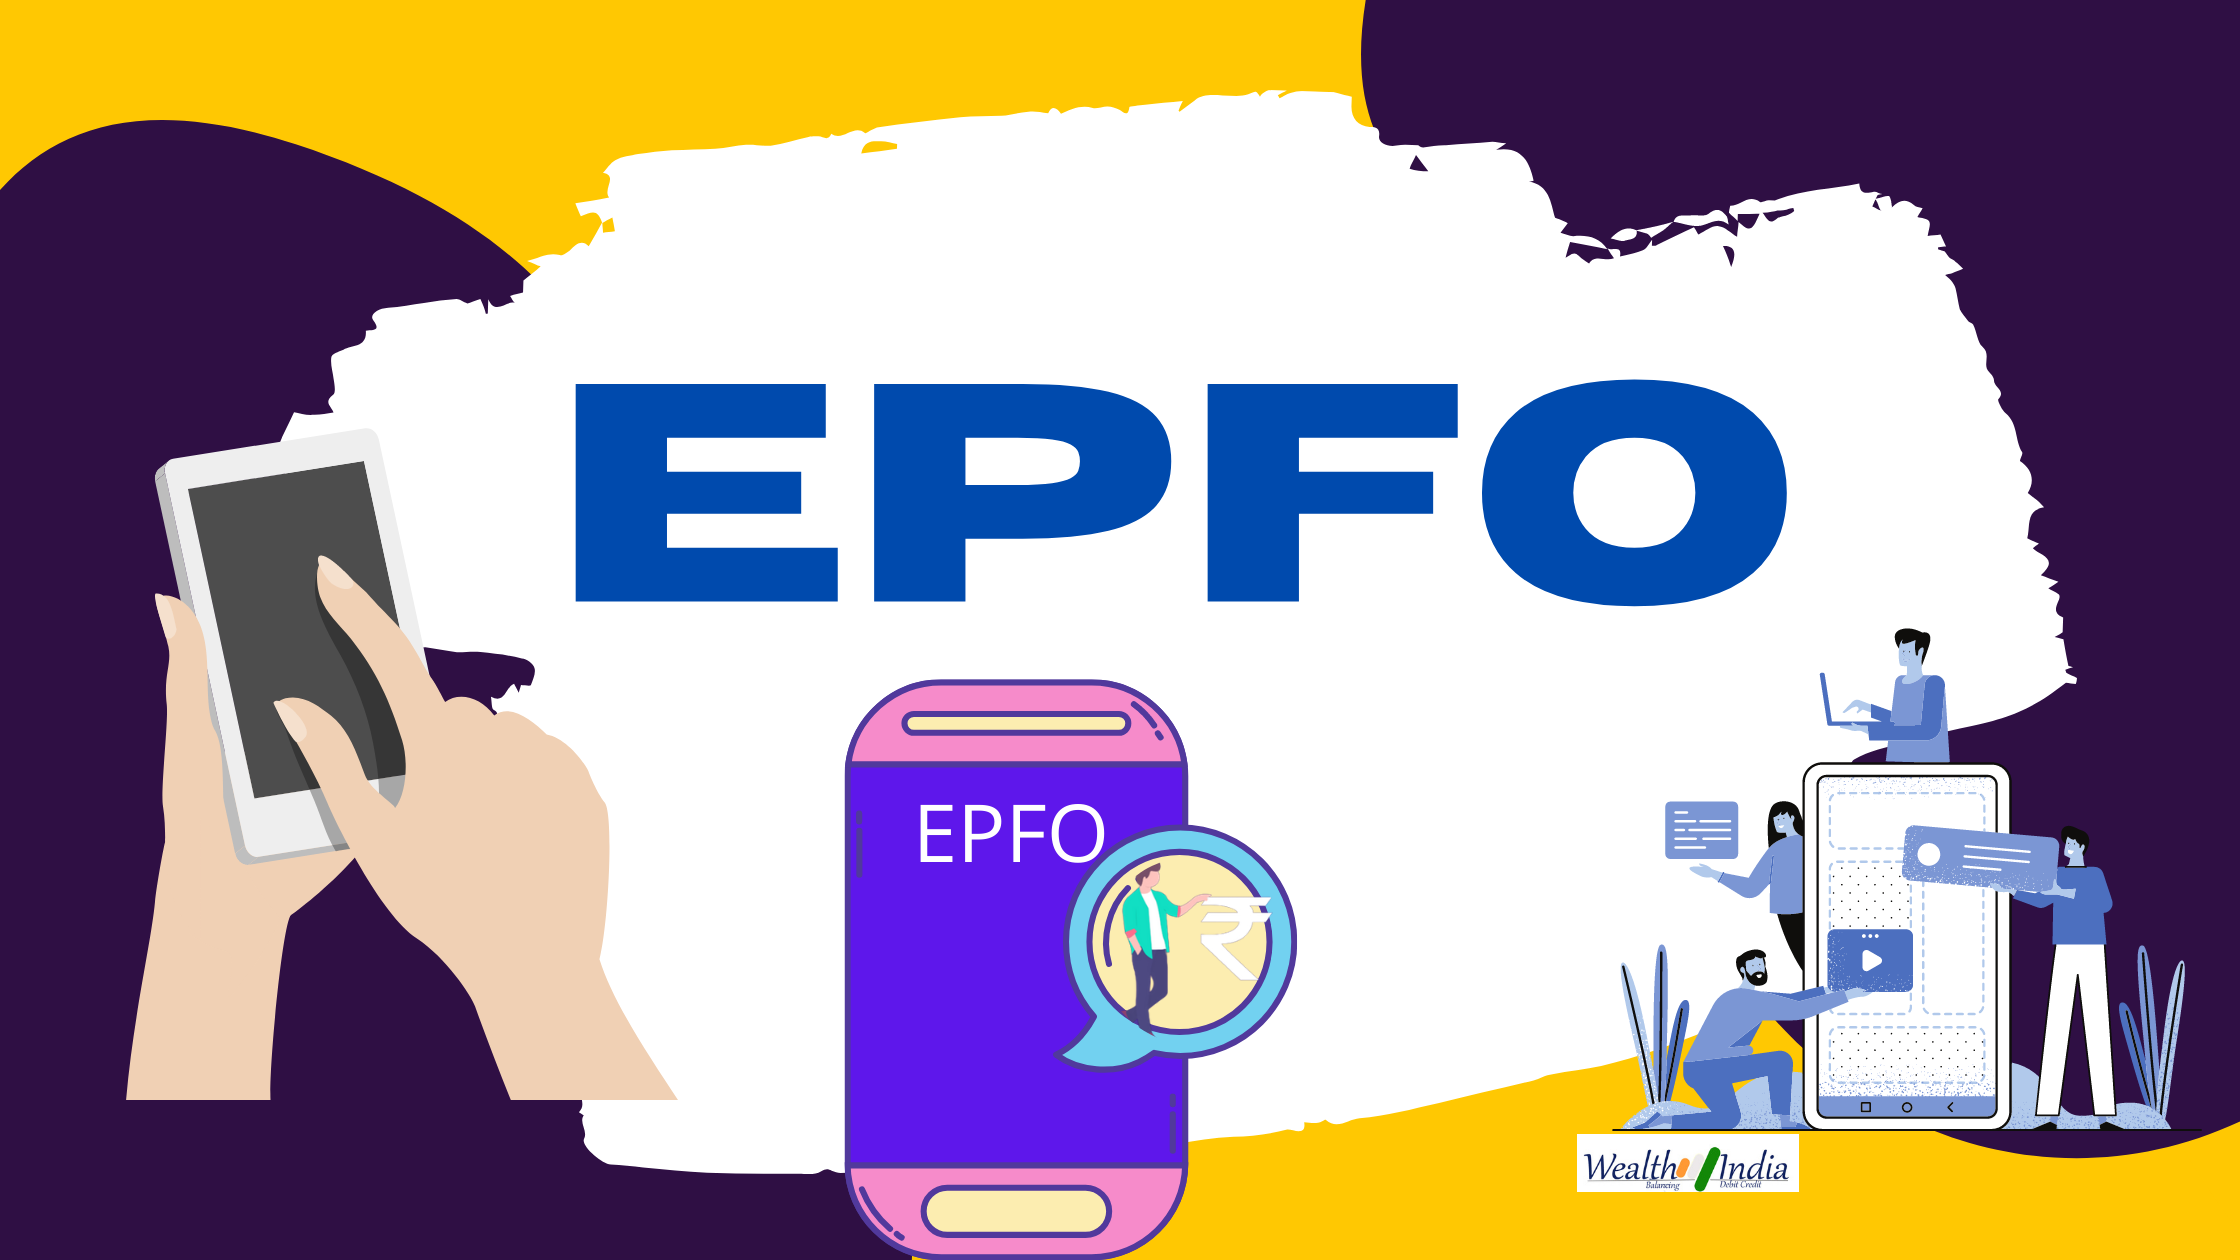 EPFO adds 11.22 lakh net subscribers in the month of March, 2021